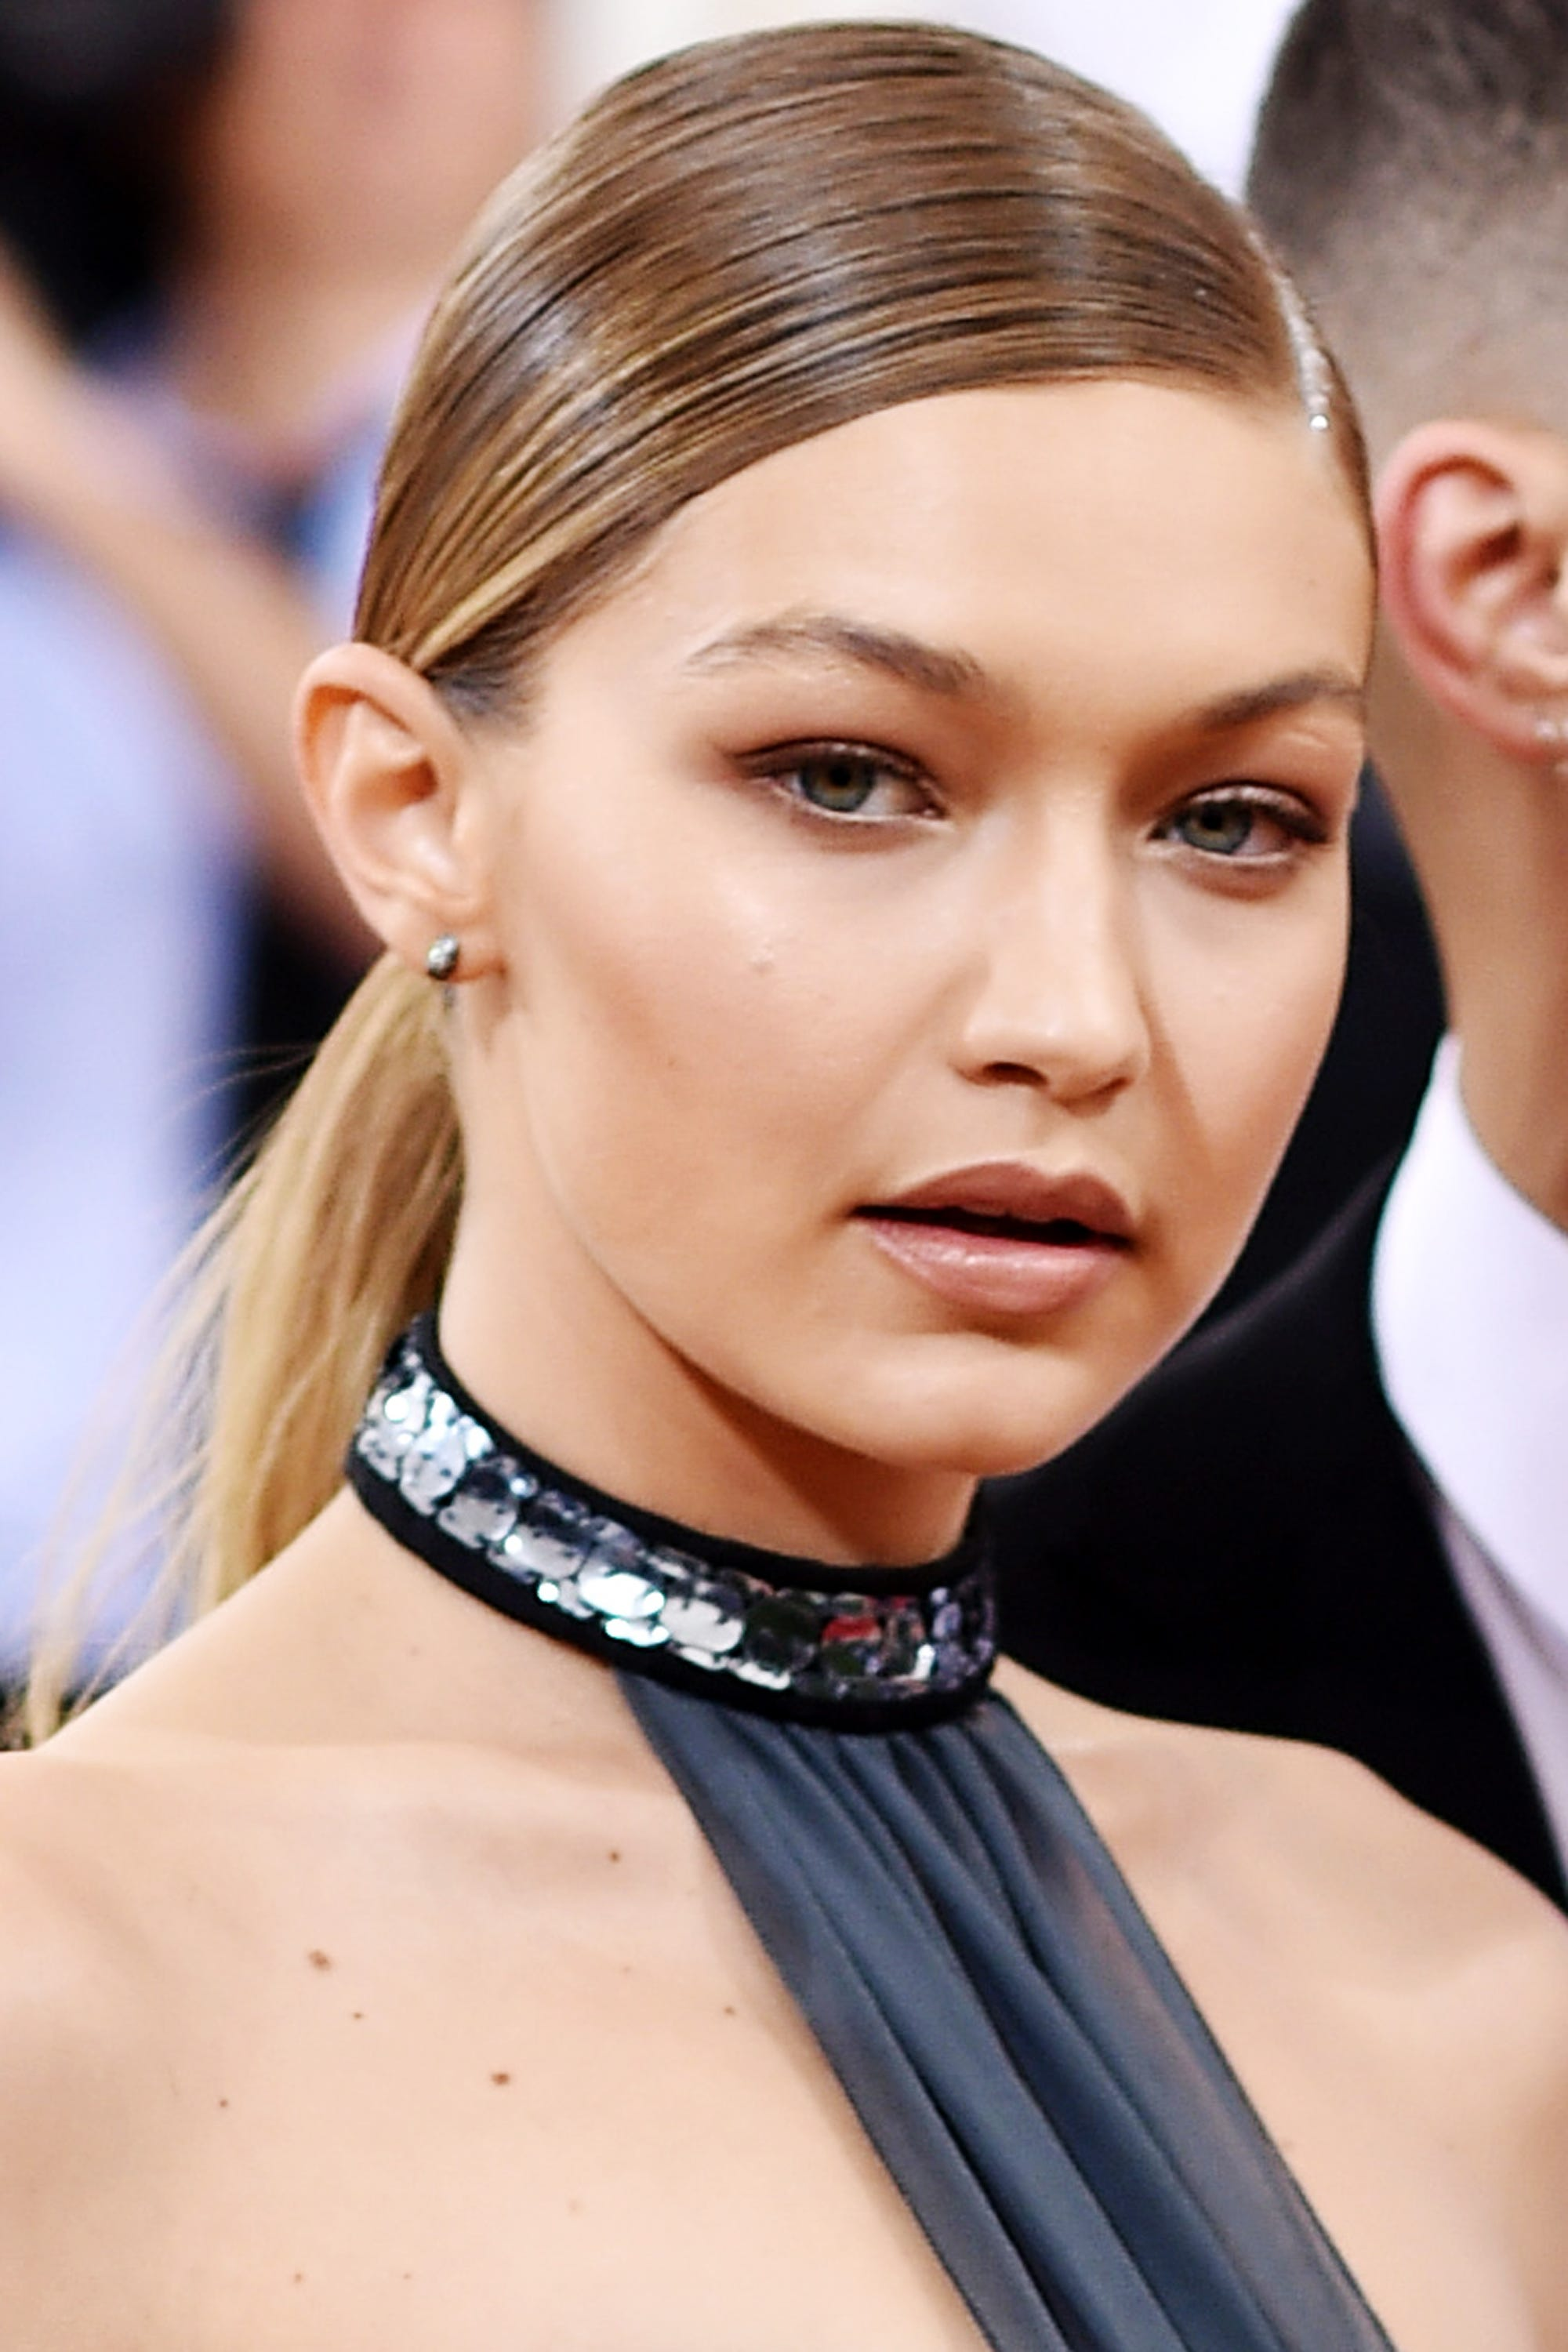 Gigi Hadid Best Beauty Trends - Dewy Skin Wavy Hair